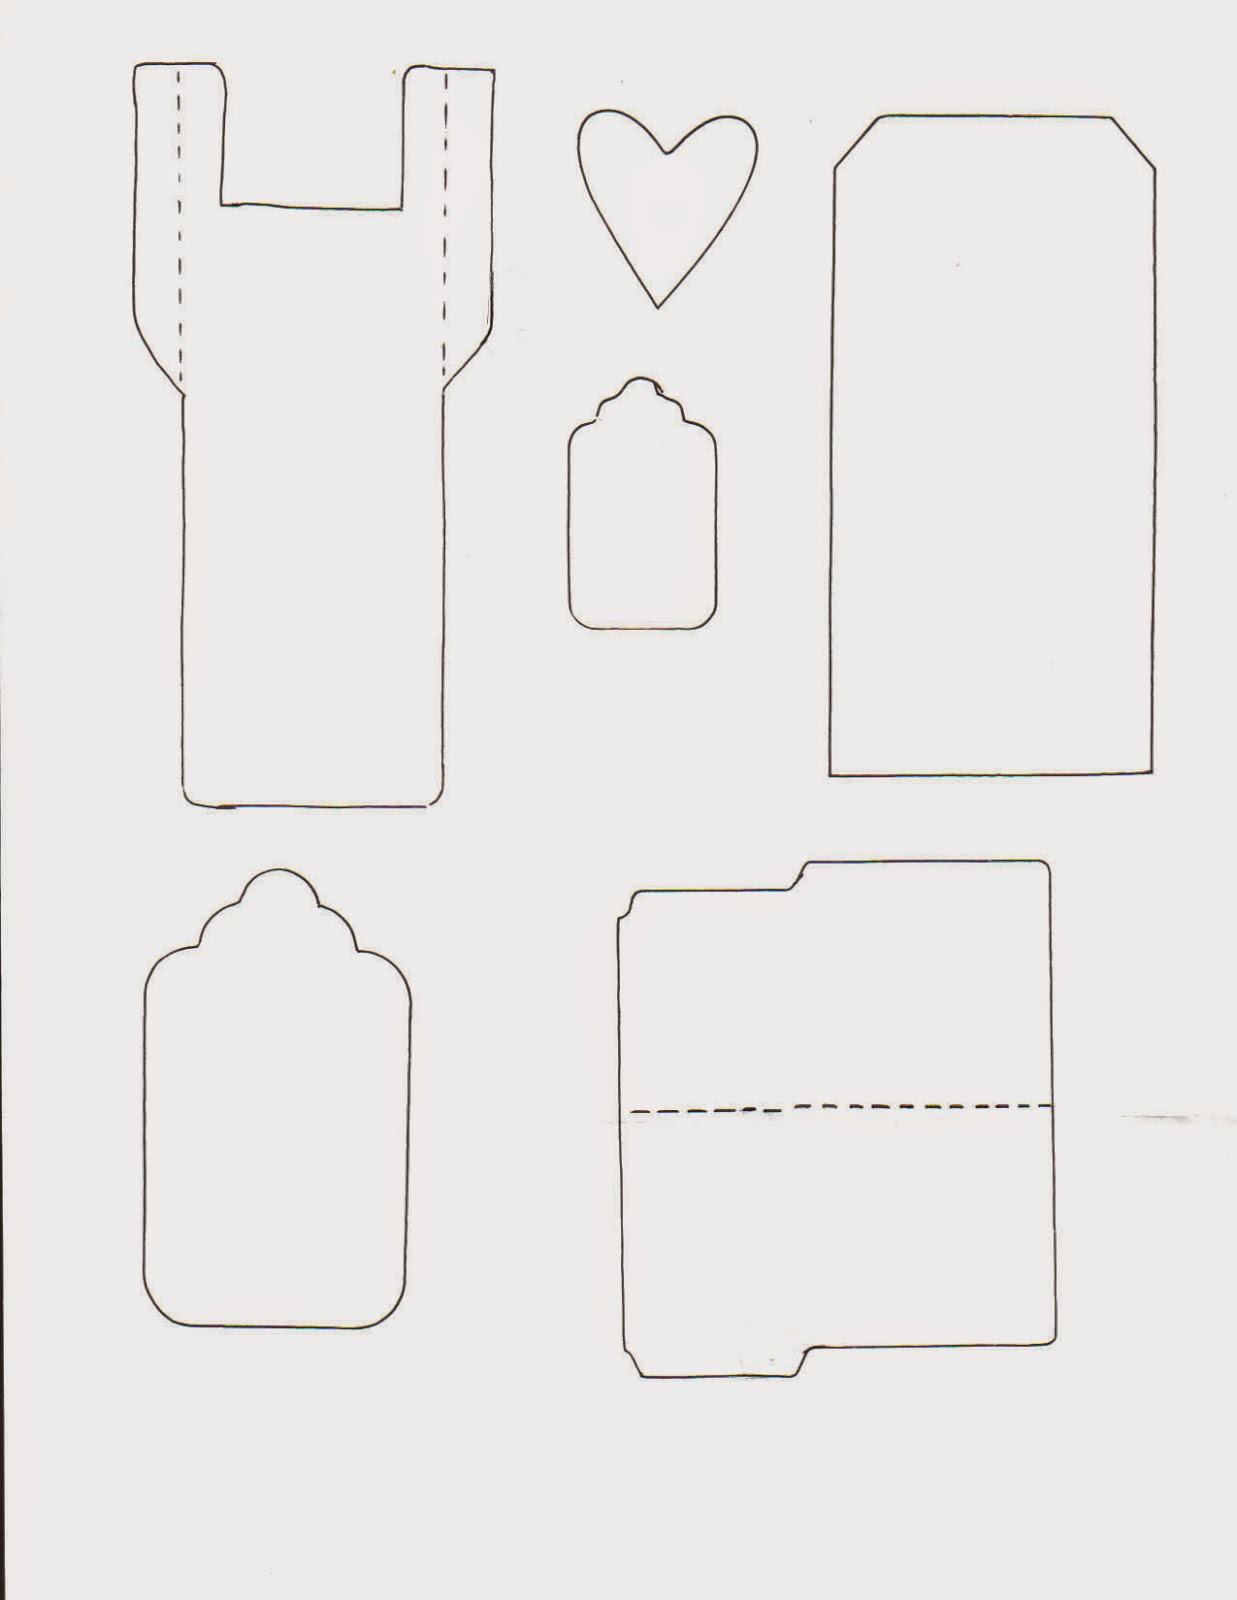 Envelope, Tag, File Folder Templates